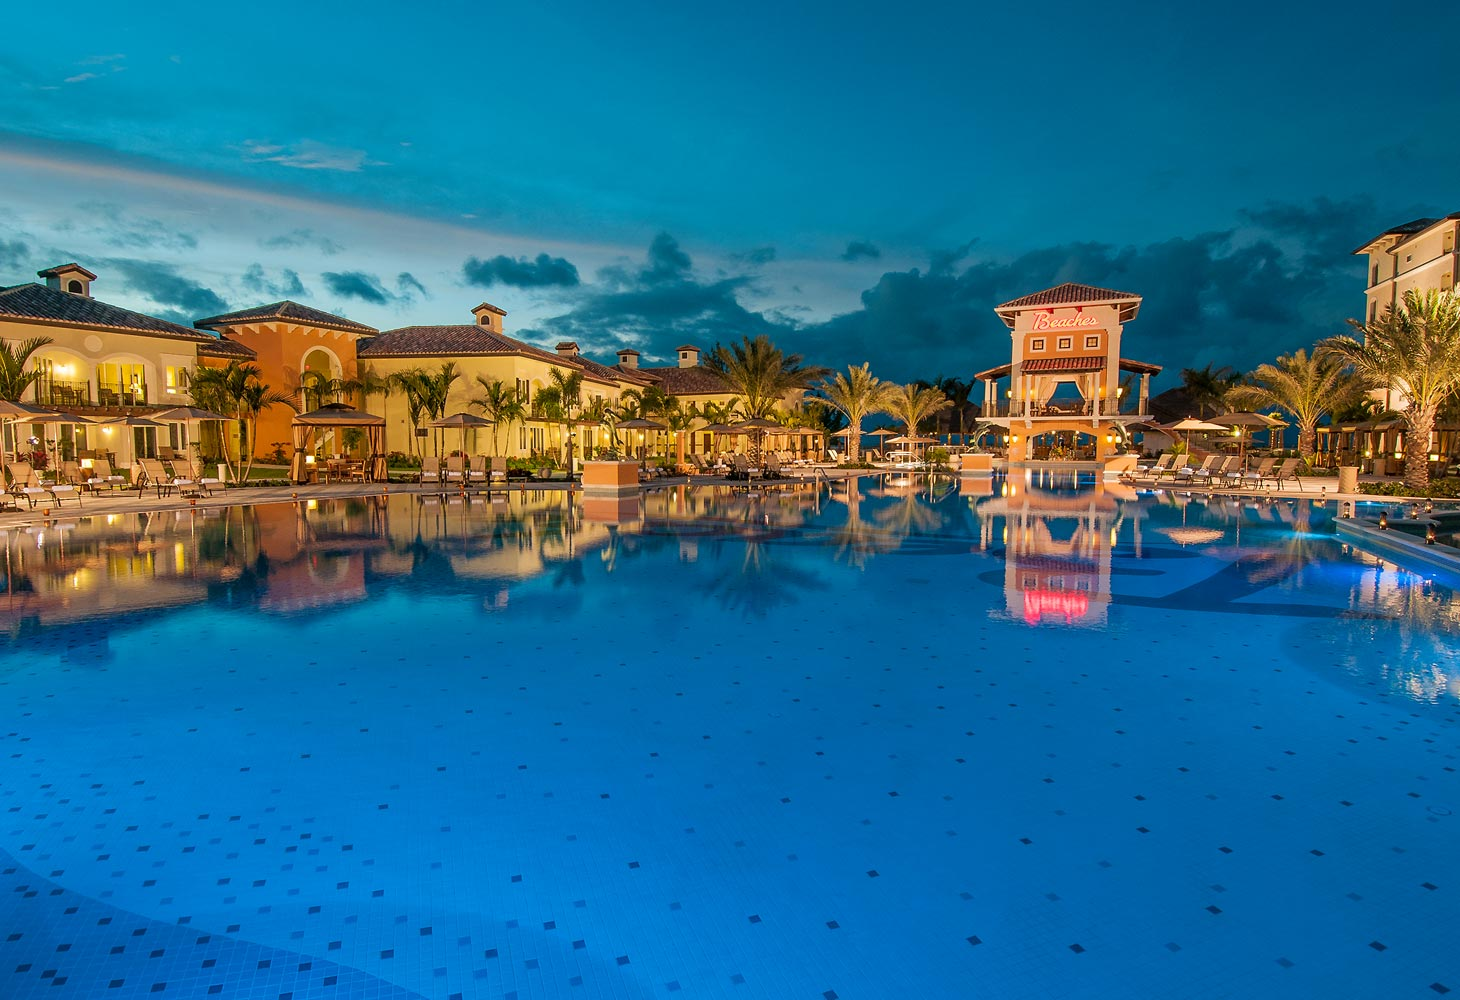 TURKS & CAICOS click to view this gorgeous resort.